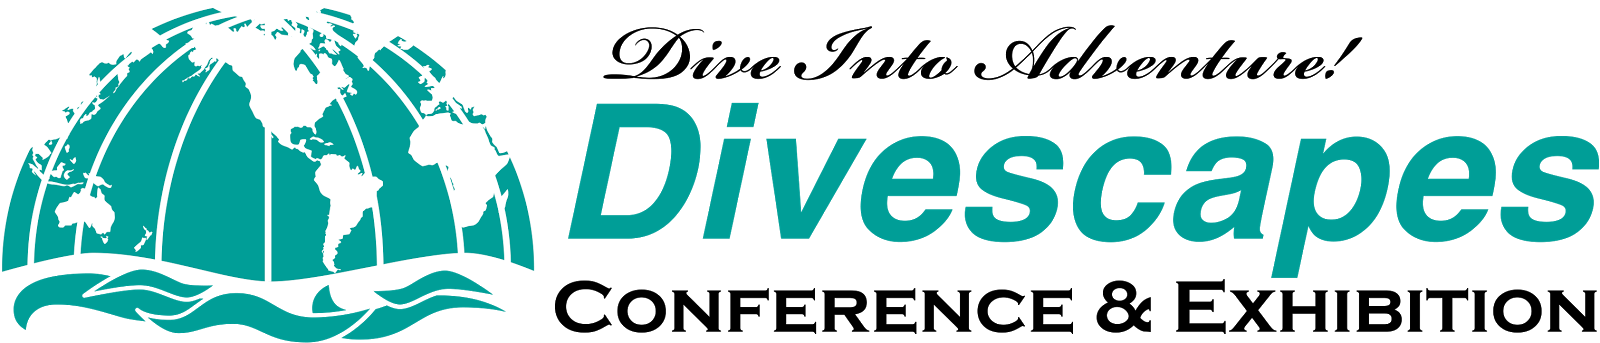 Divescapes Conference & Exhibition - Dive into Adventure!